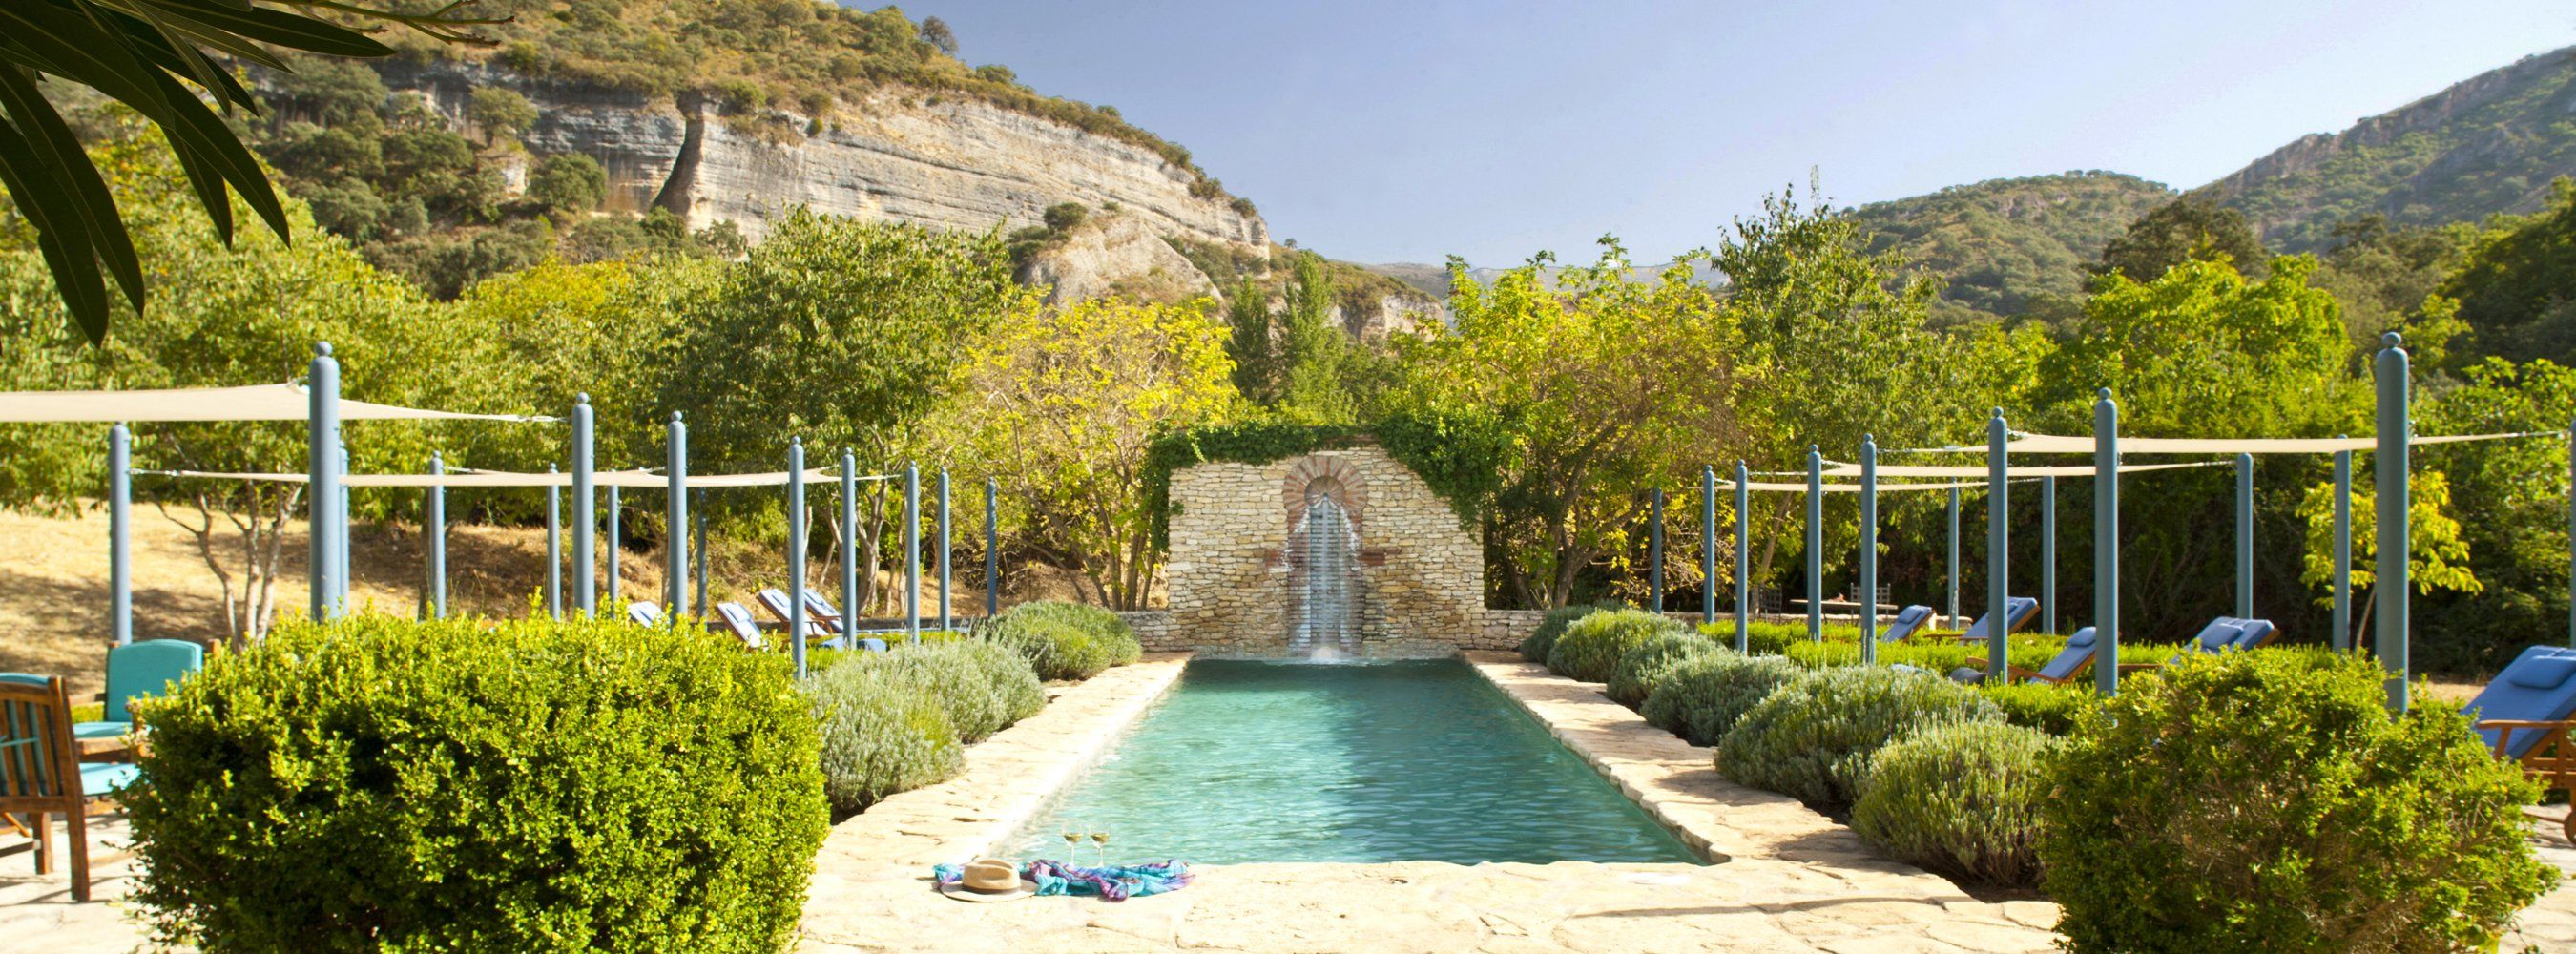 pool at luxury villa ronda